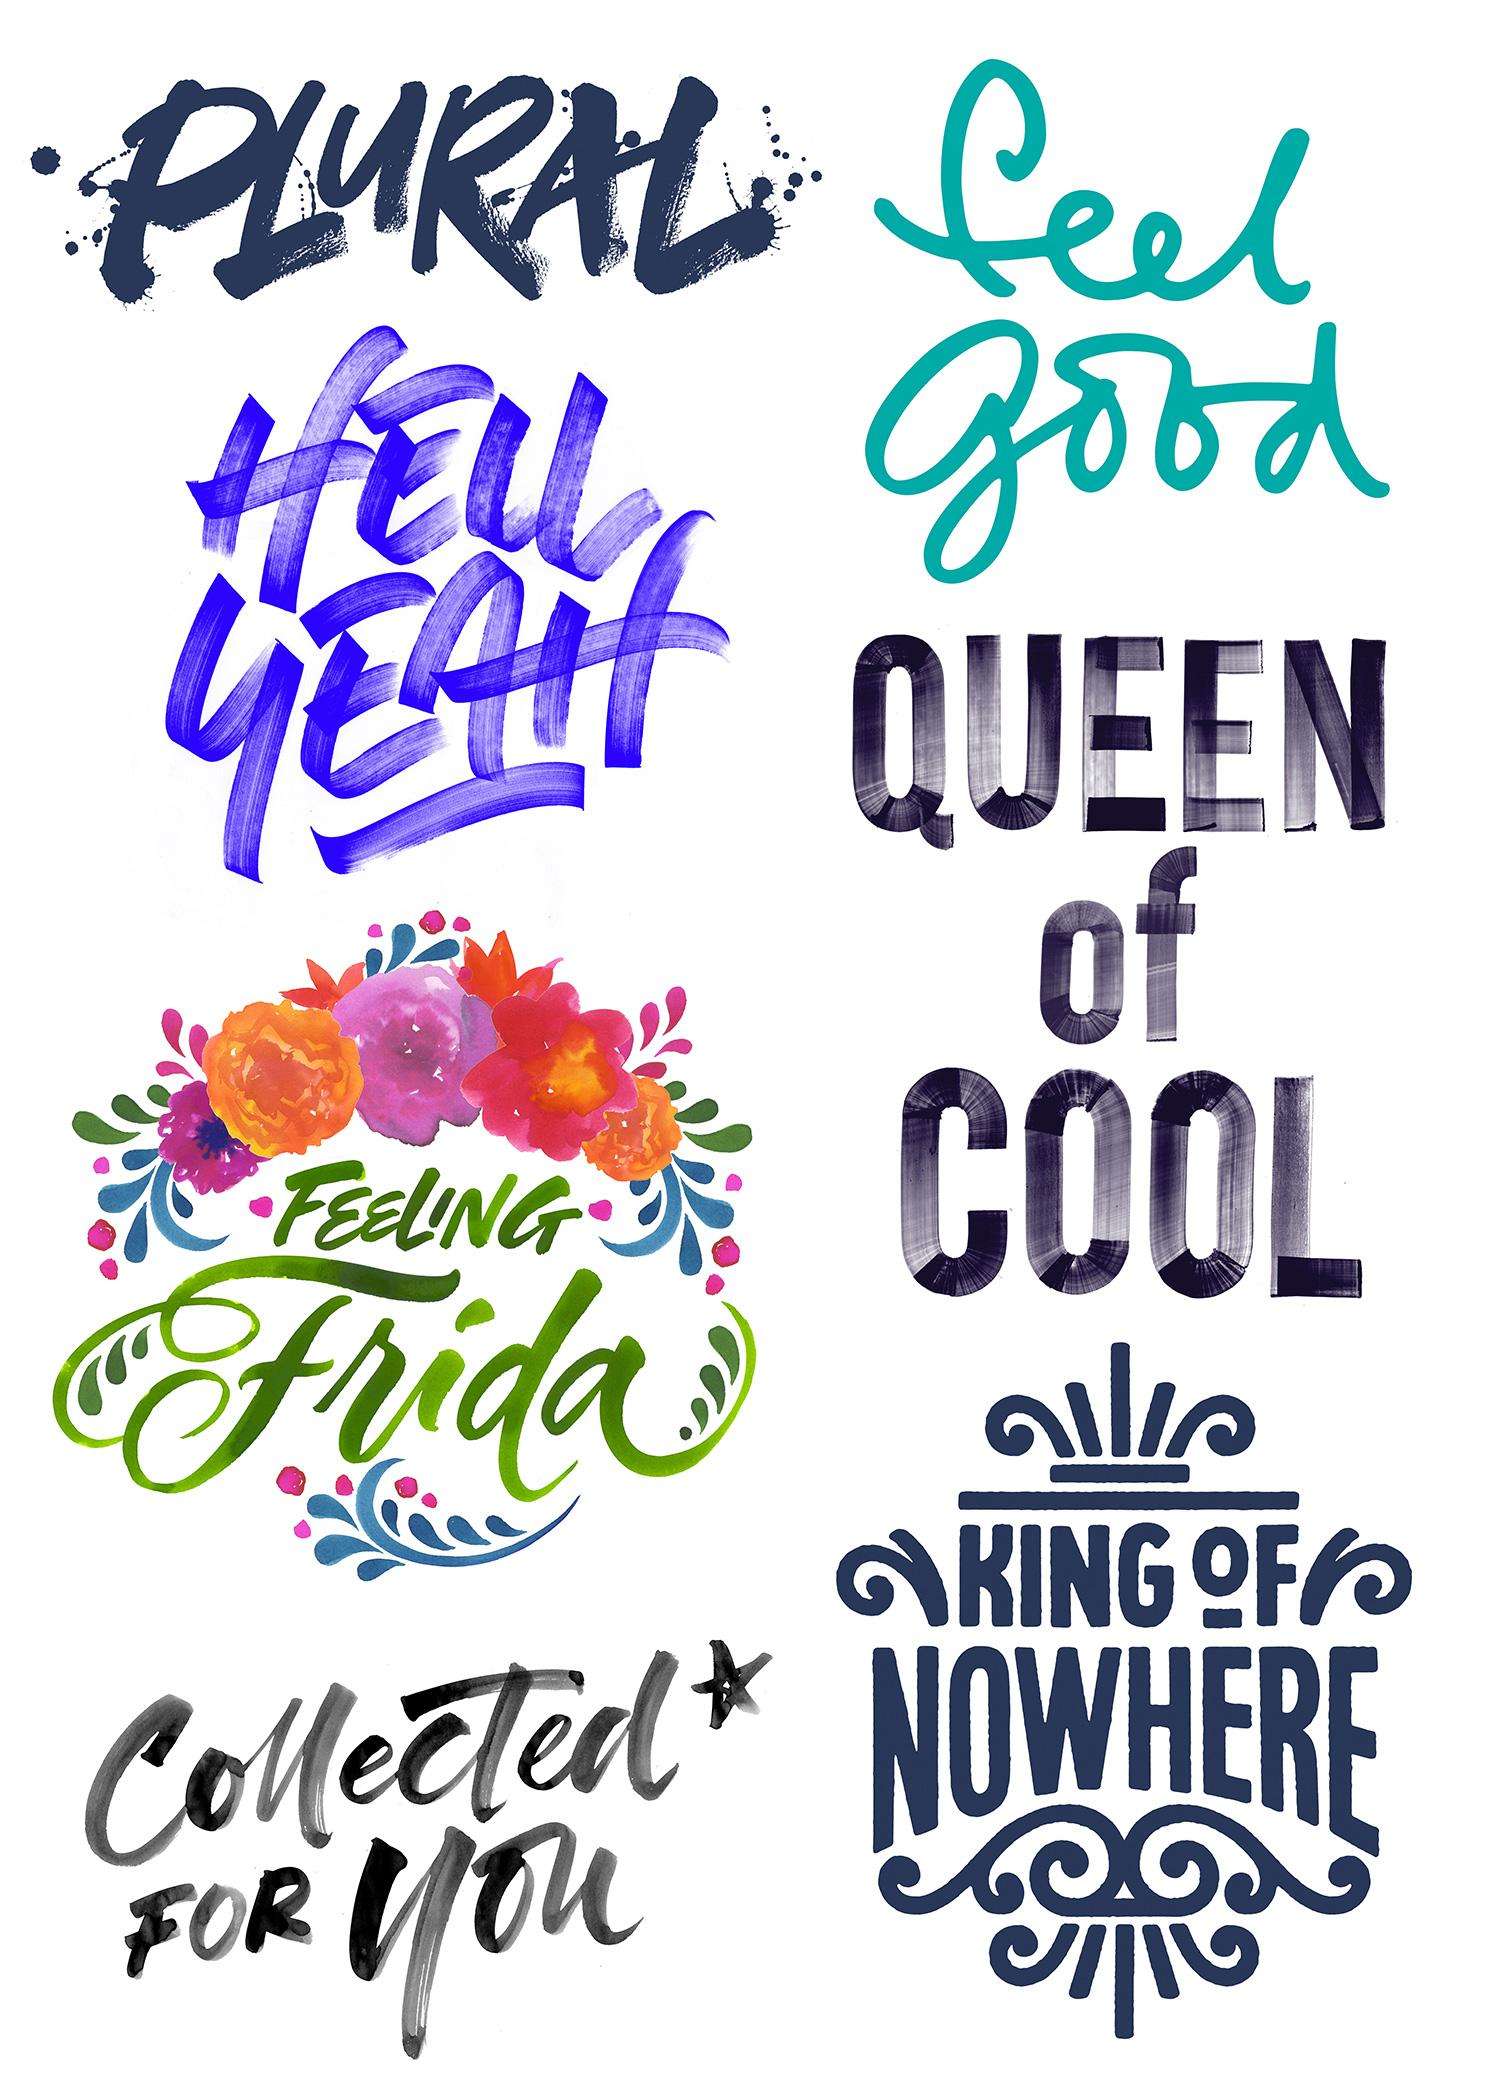 24 brush lettering tips and techniques - Digital Arts